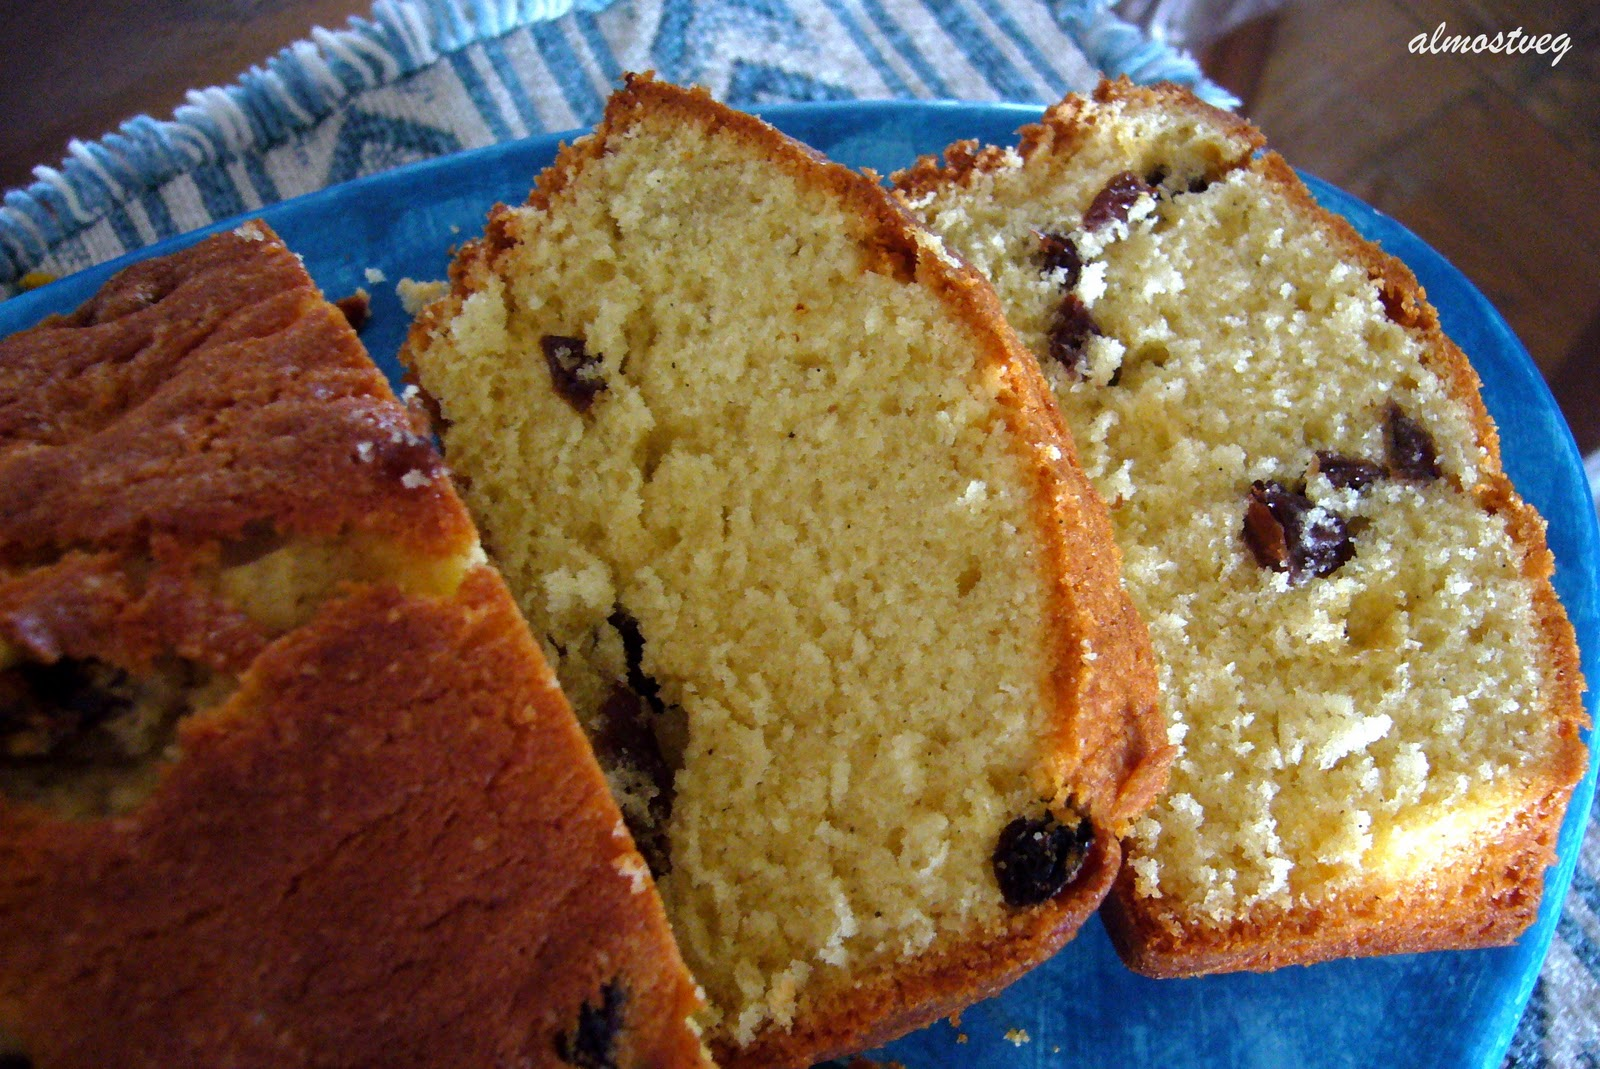 almostveg: Orange tea cake with boozy raisins